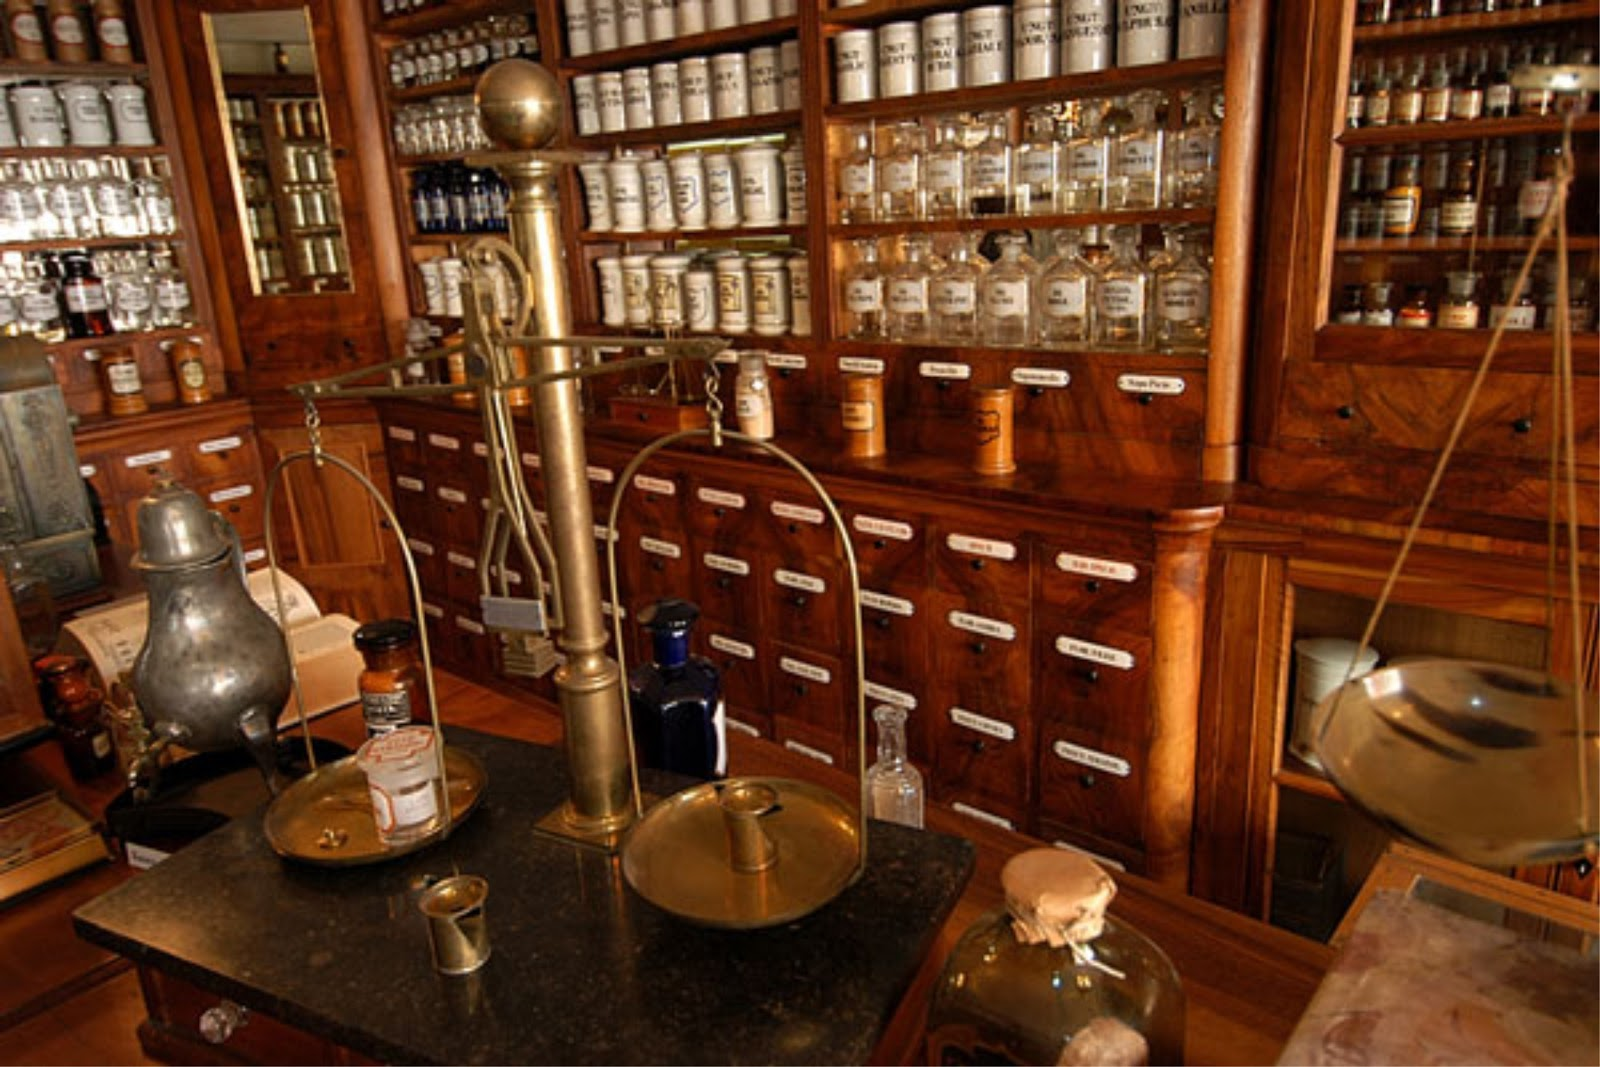 Simple J Thaddeus Ozarkus Cookie Jars And Other Larks Cabinets With A With  Vintage Apothecary Cabinet.